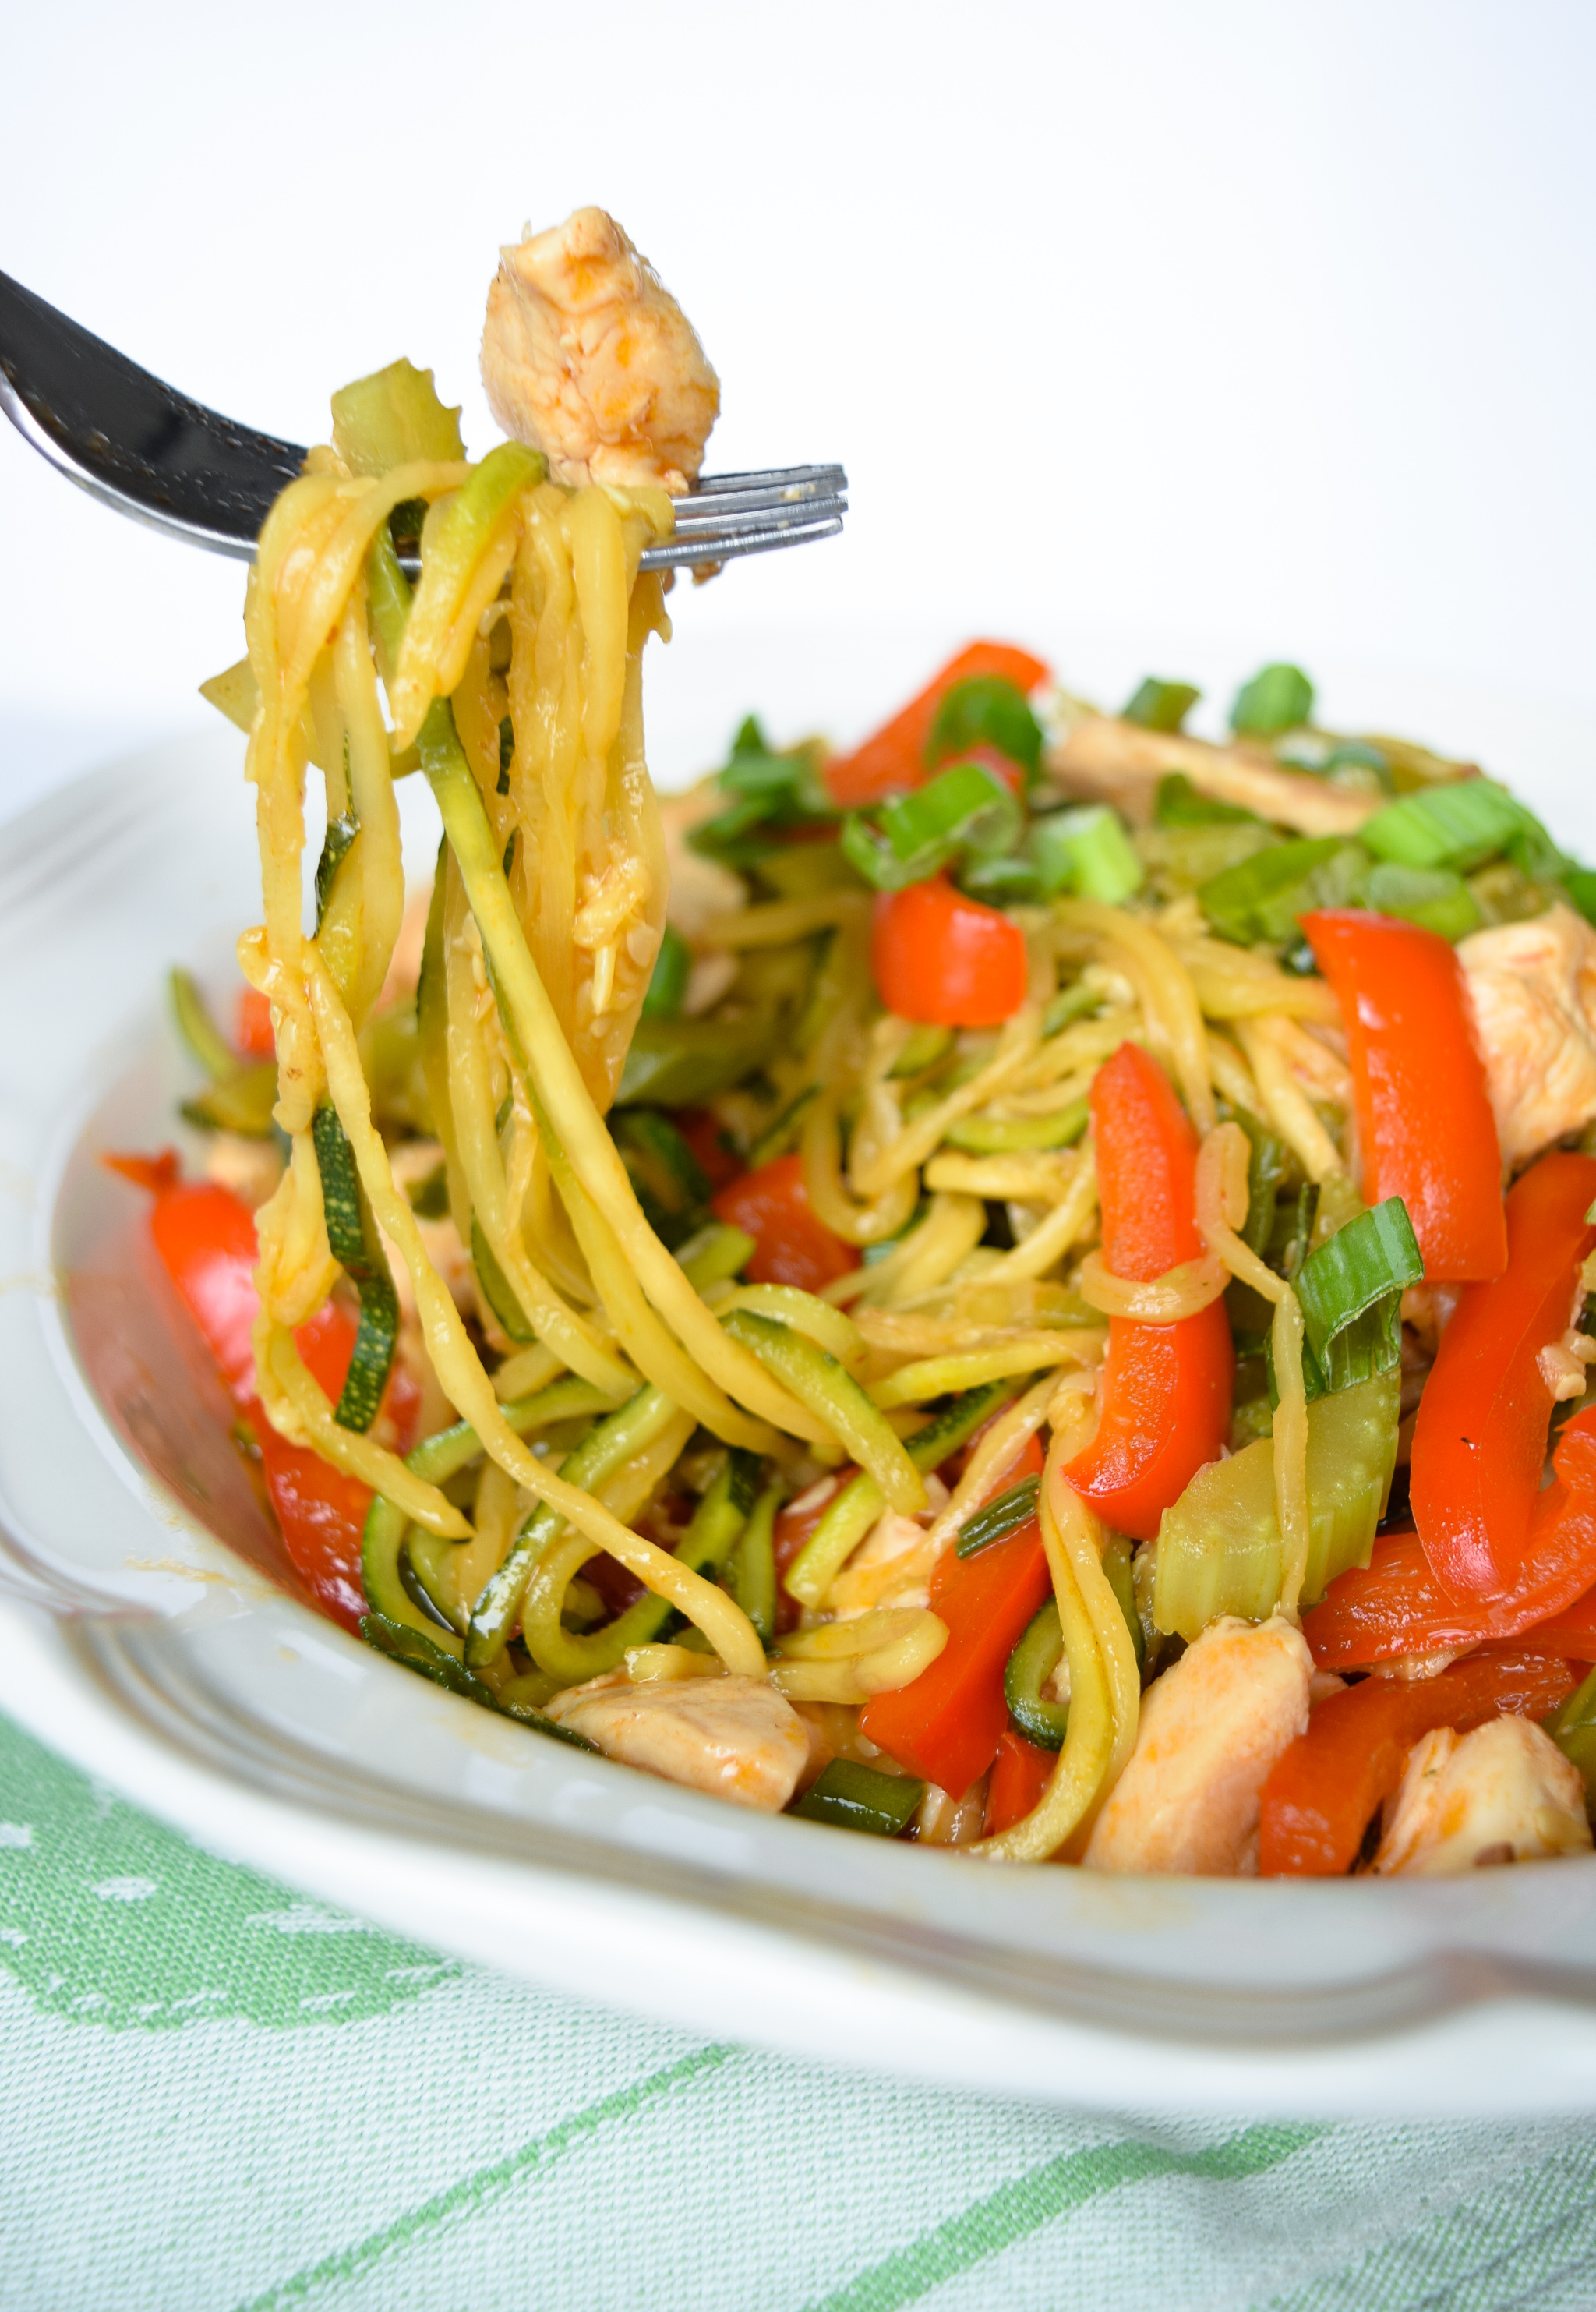 A noodle inspired dish made with zucchini noodles and juicy chicken breast. This Zucchini Chicken